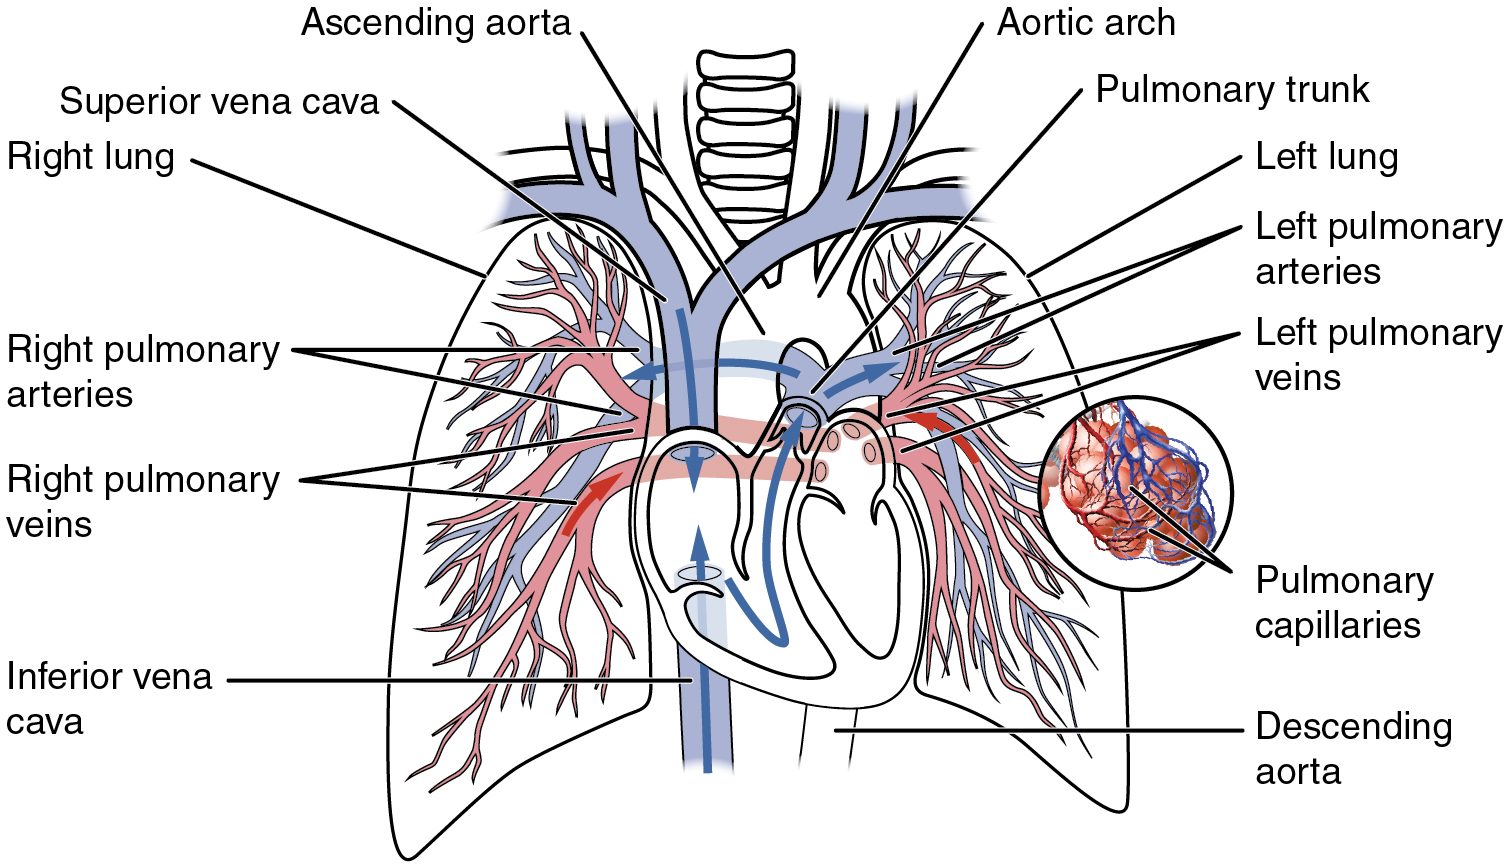 Circulatory pathways anatomy and physiology this diagram shows the network of blood vessels in the lungs pooptronica